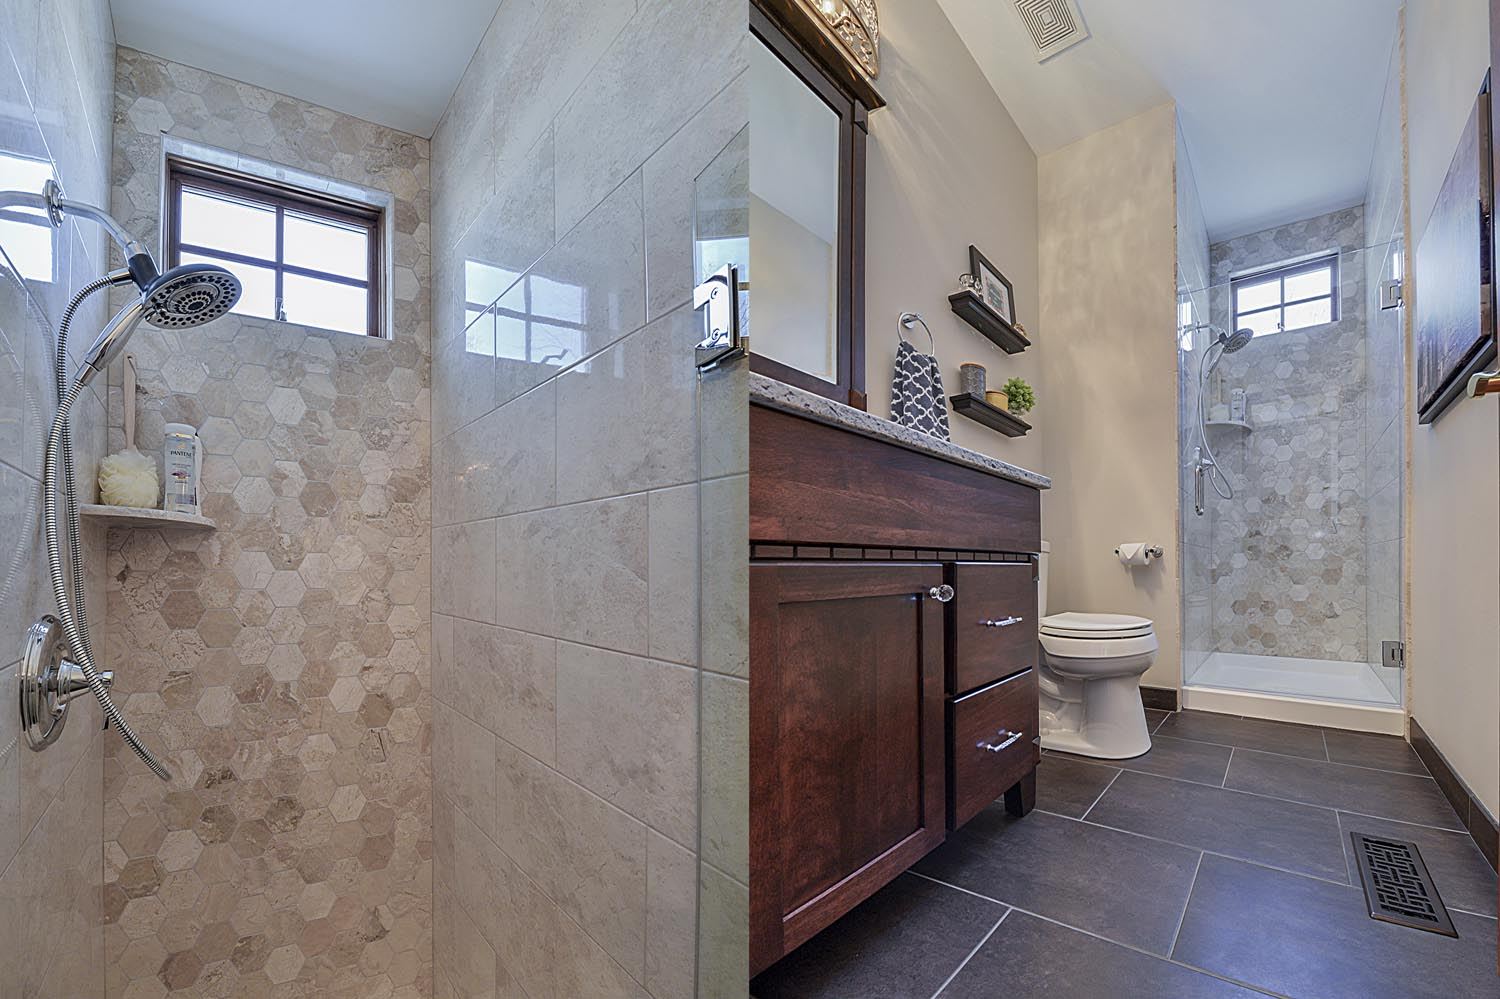 Bathroom Remodels Sacramento patrick & sharon's bathroom remodel pictures | home remodeling